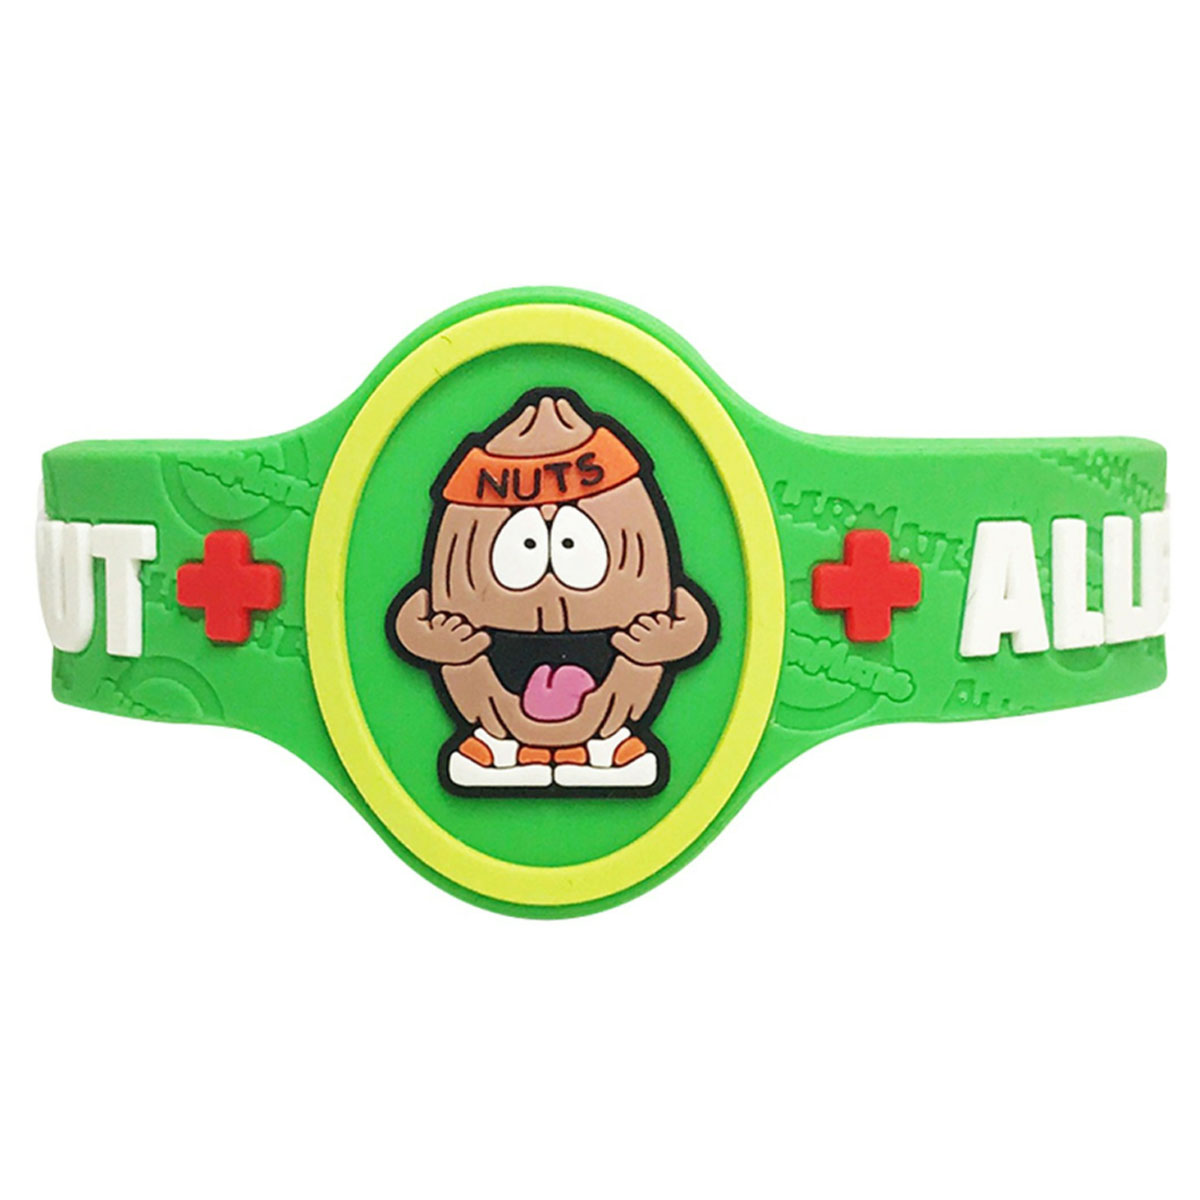 Children's Medical Alert Bracelet for Tree Nut Allergies AWABR10018